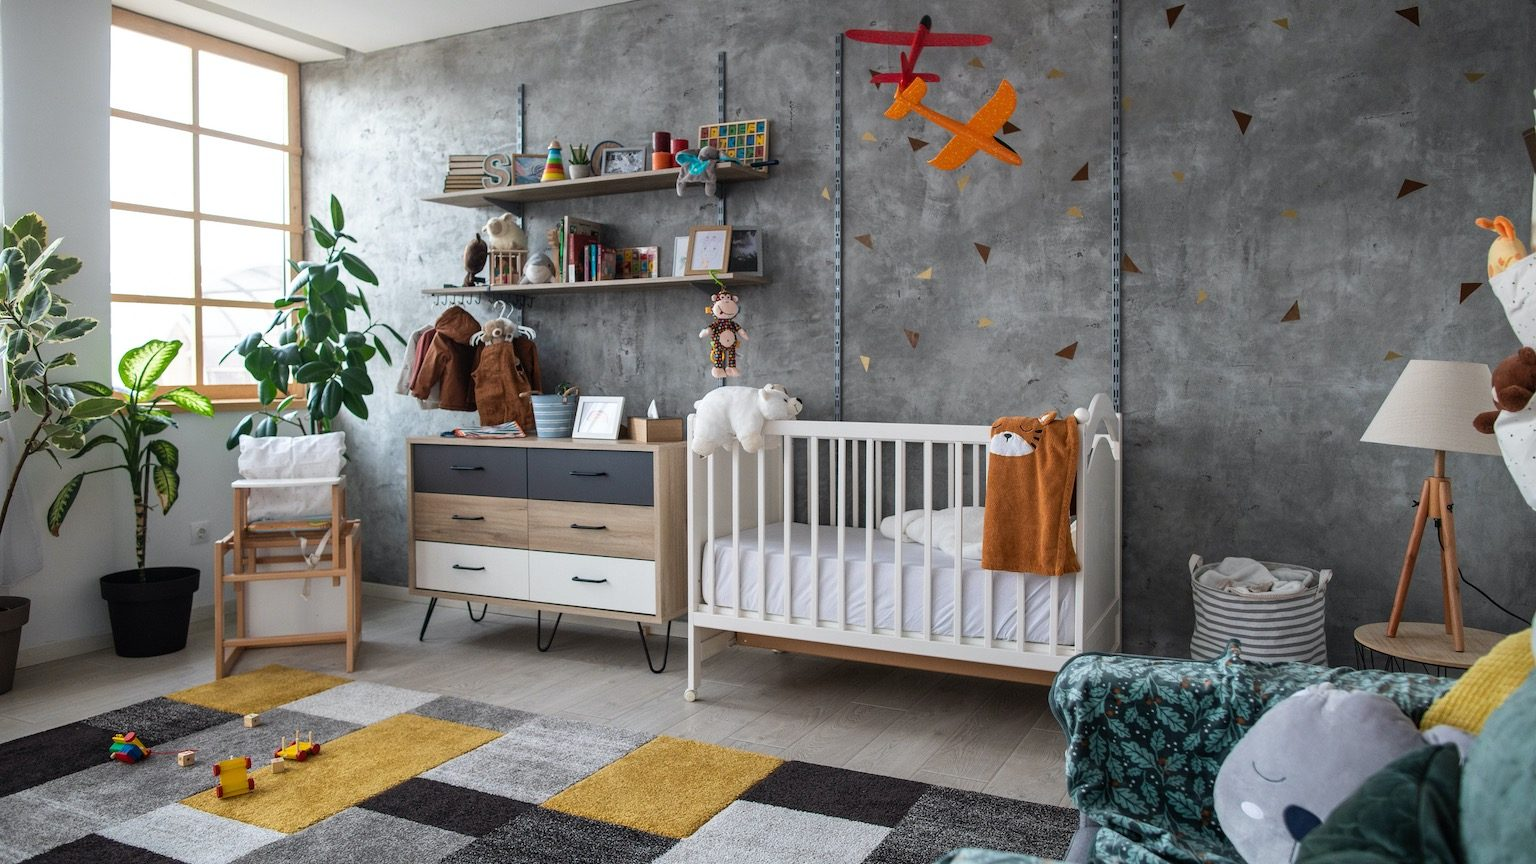 Empty children's playroom with crib, toy planes, plants, furniture